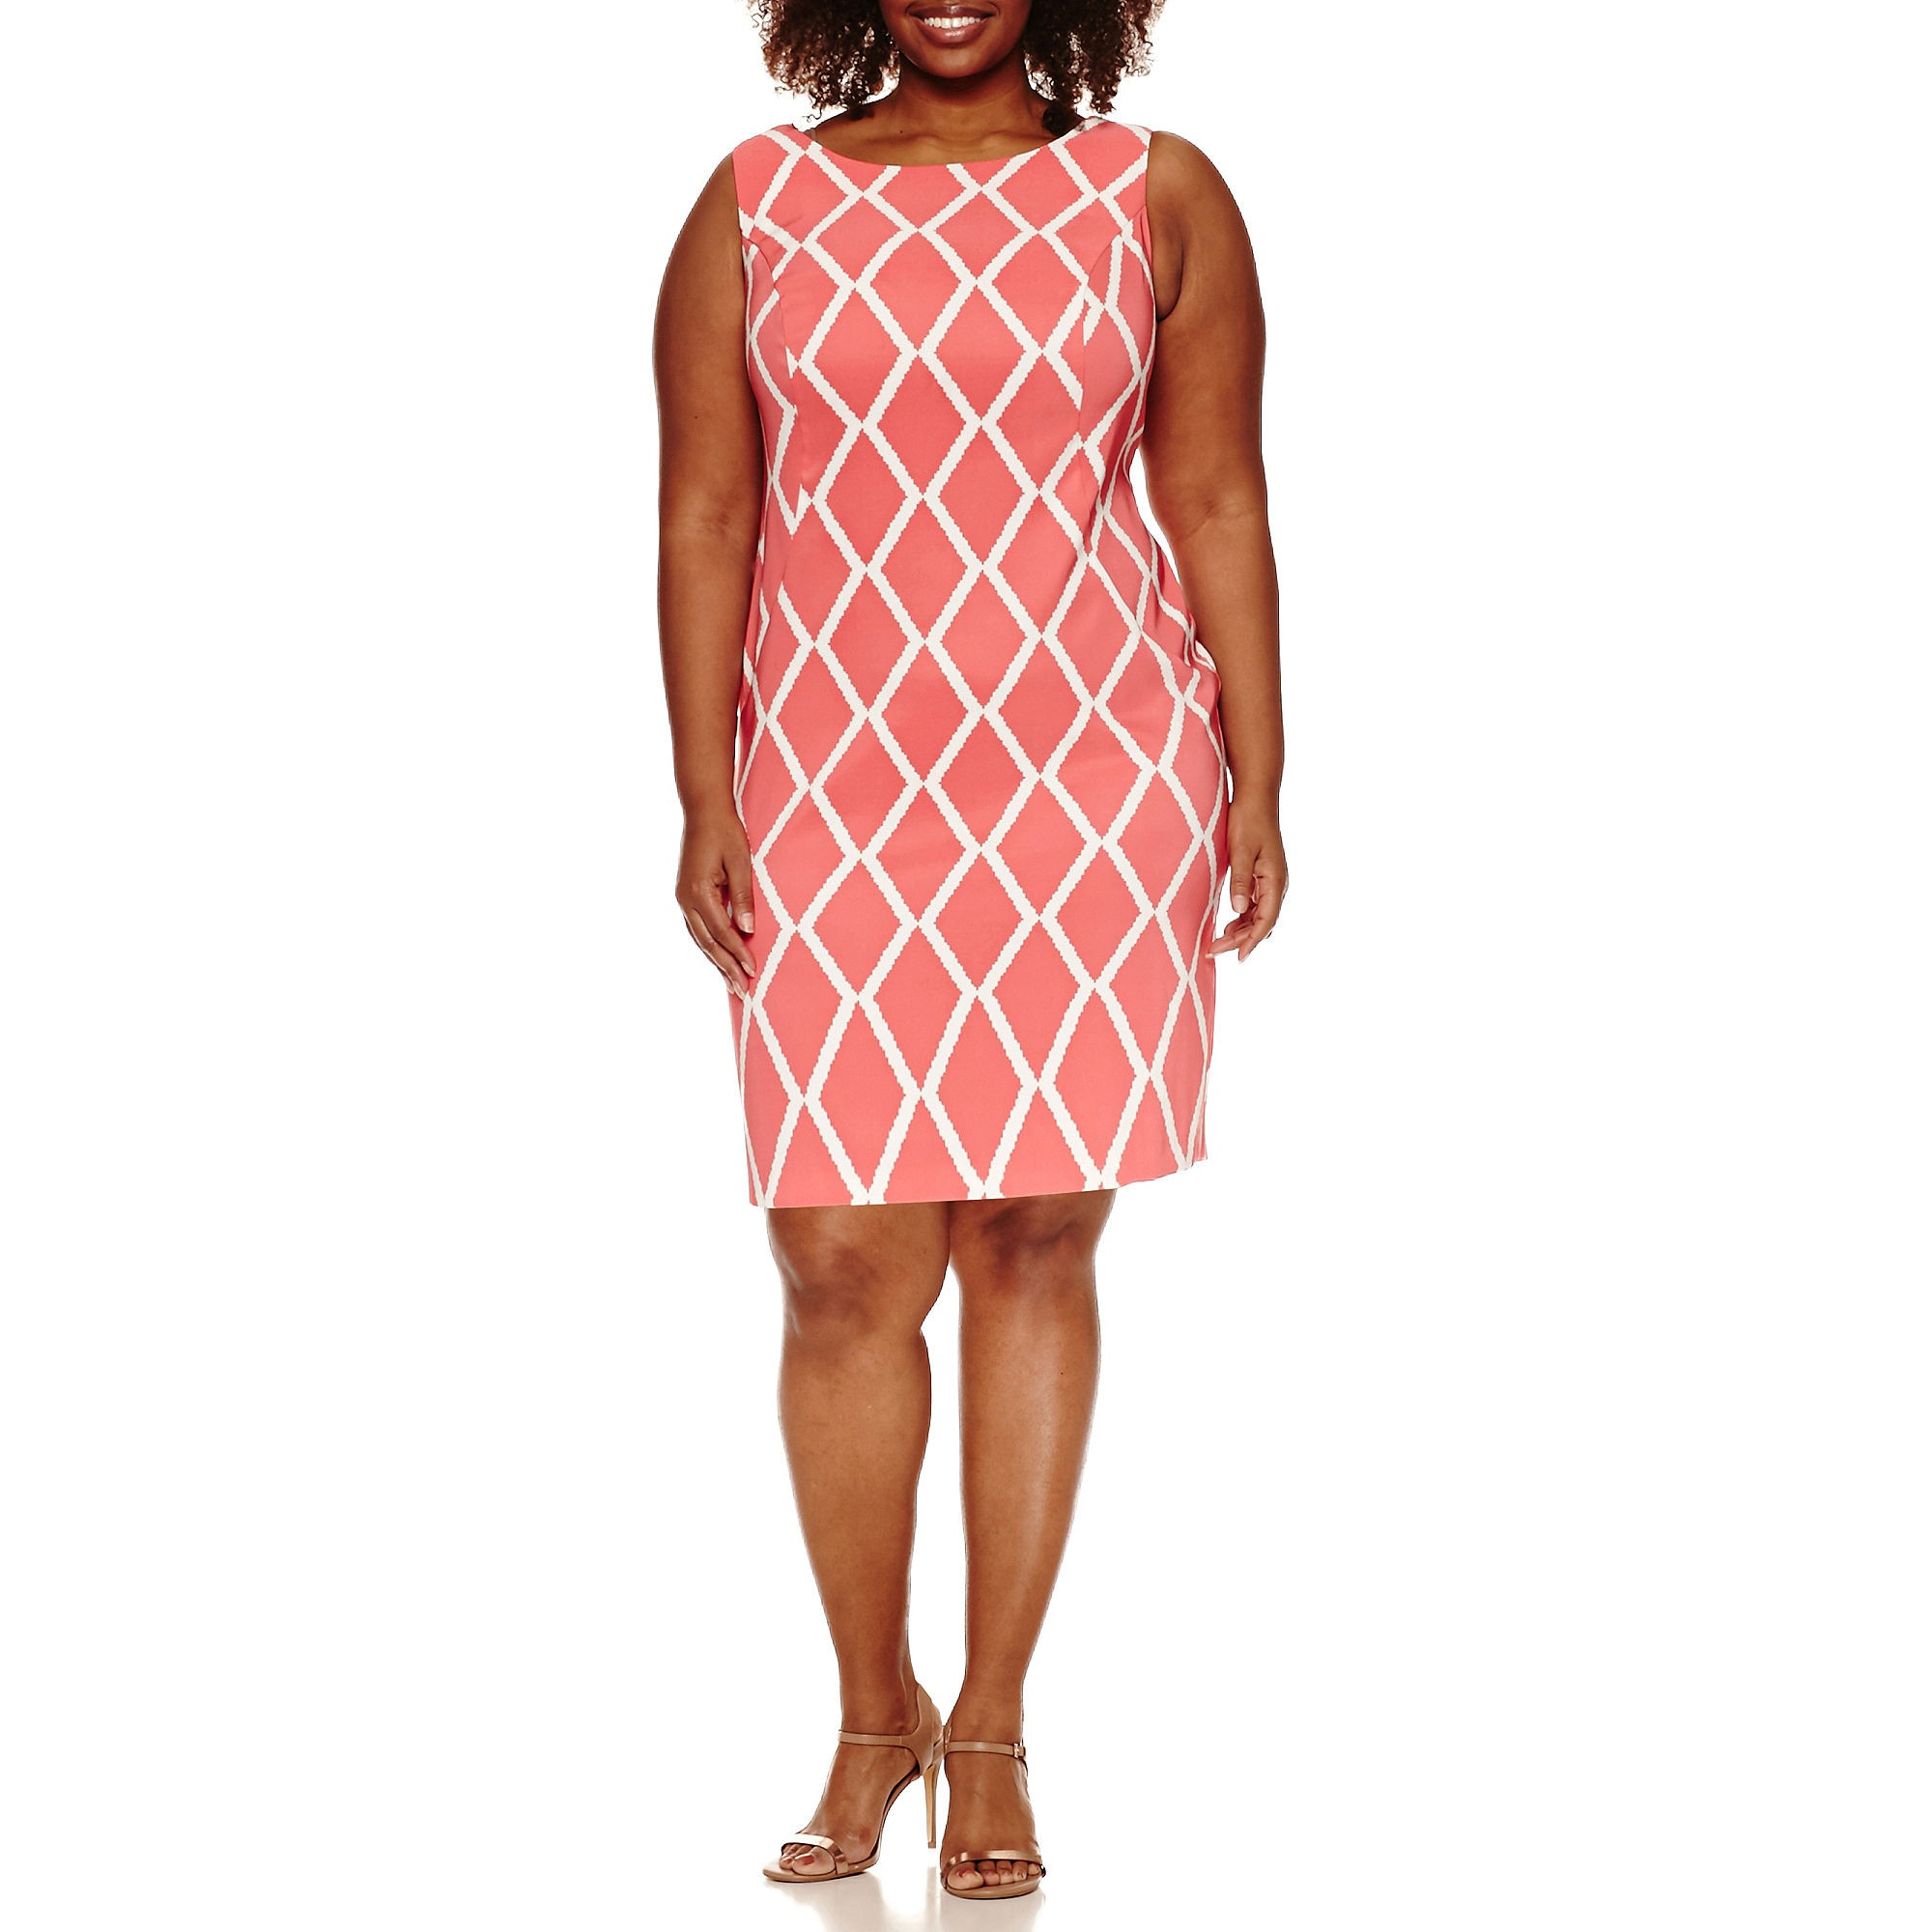 Dresses for apple shaped women - Alyx